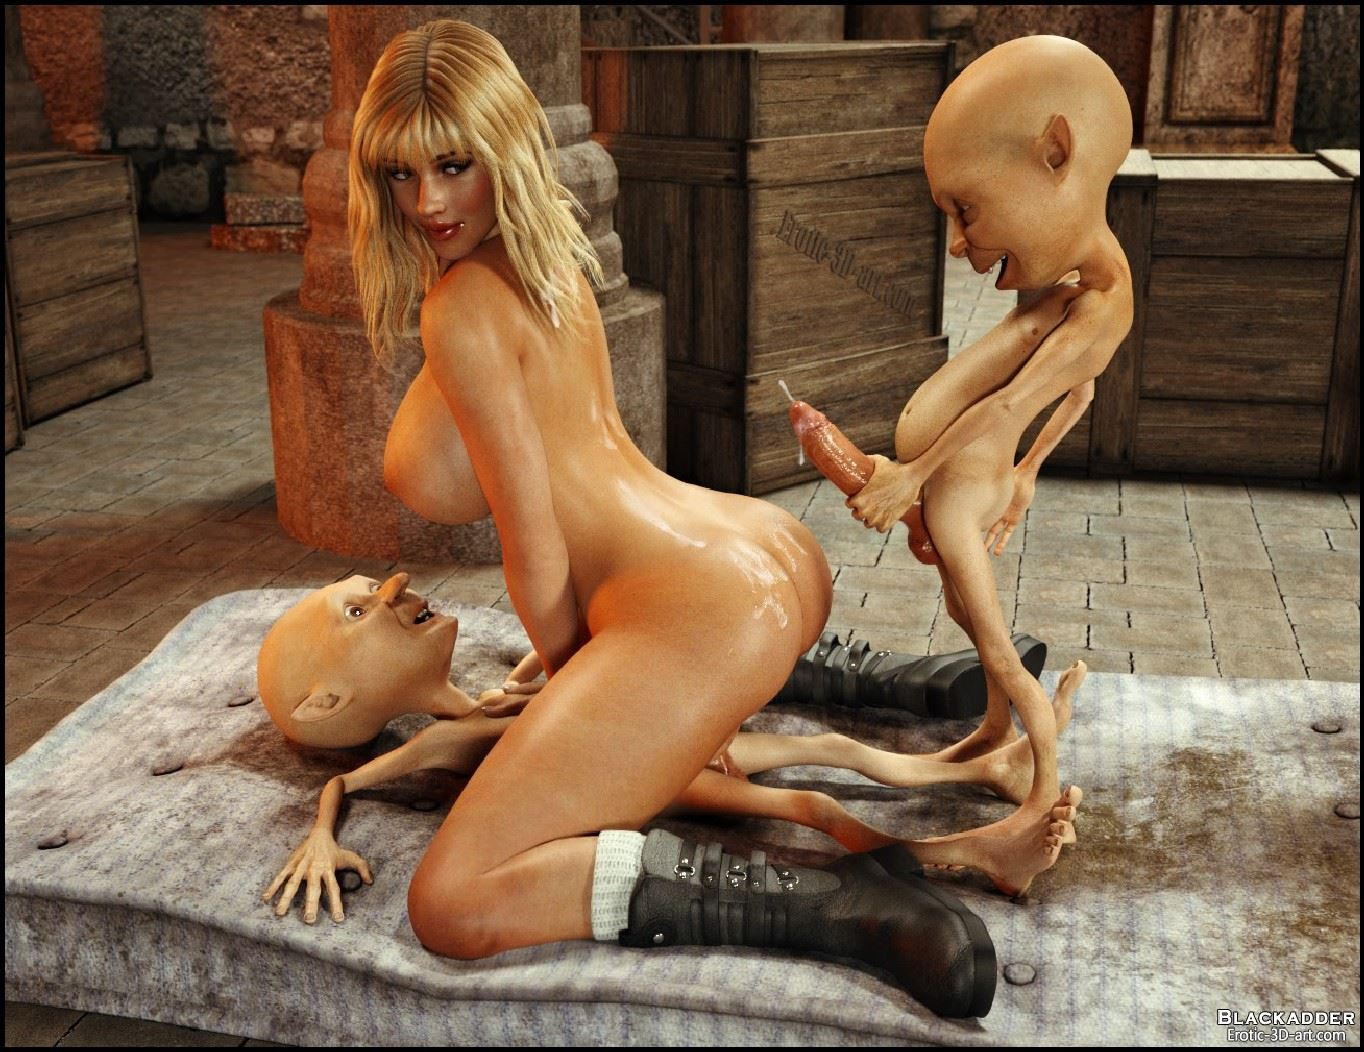 Blackadder 3d monster xxx sex streaming